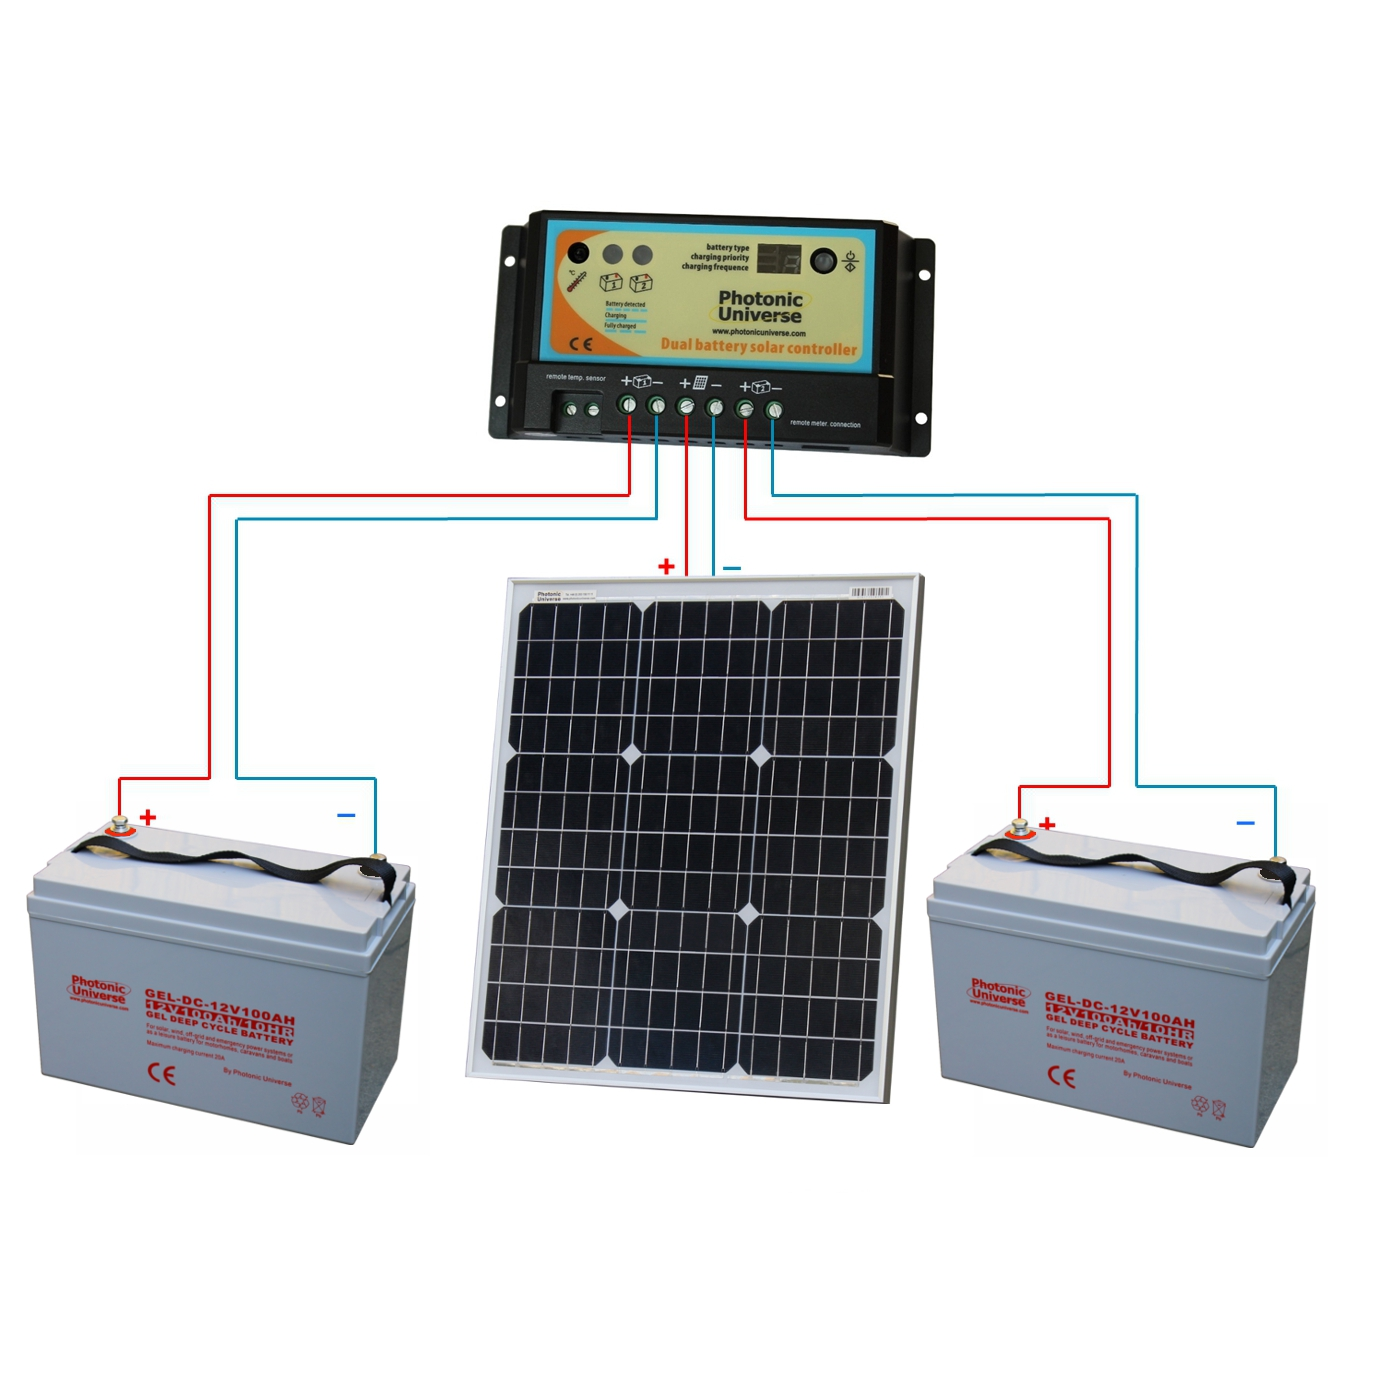 50W 12V dual battery solar panel charging kit with controller